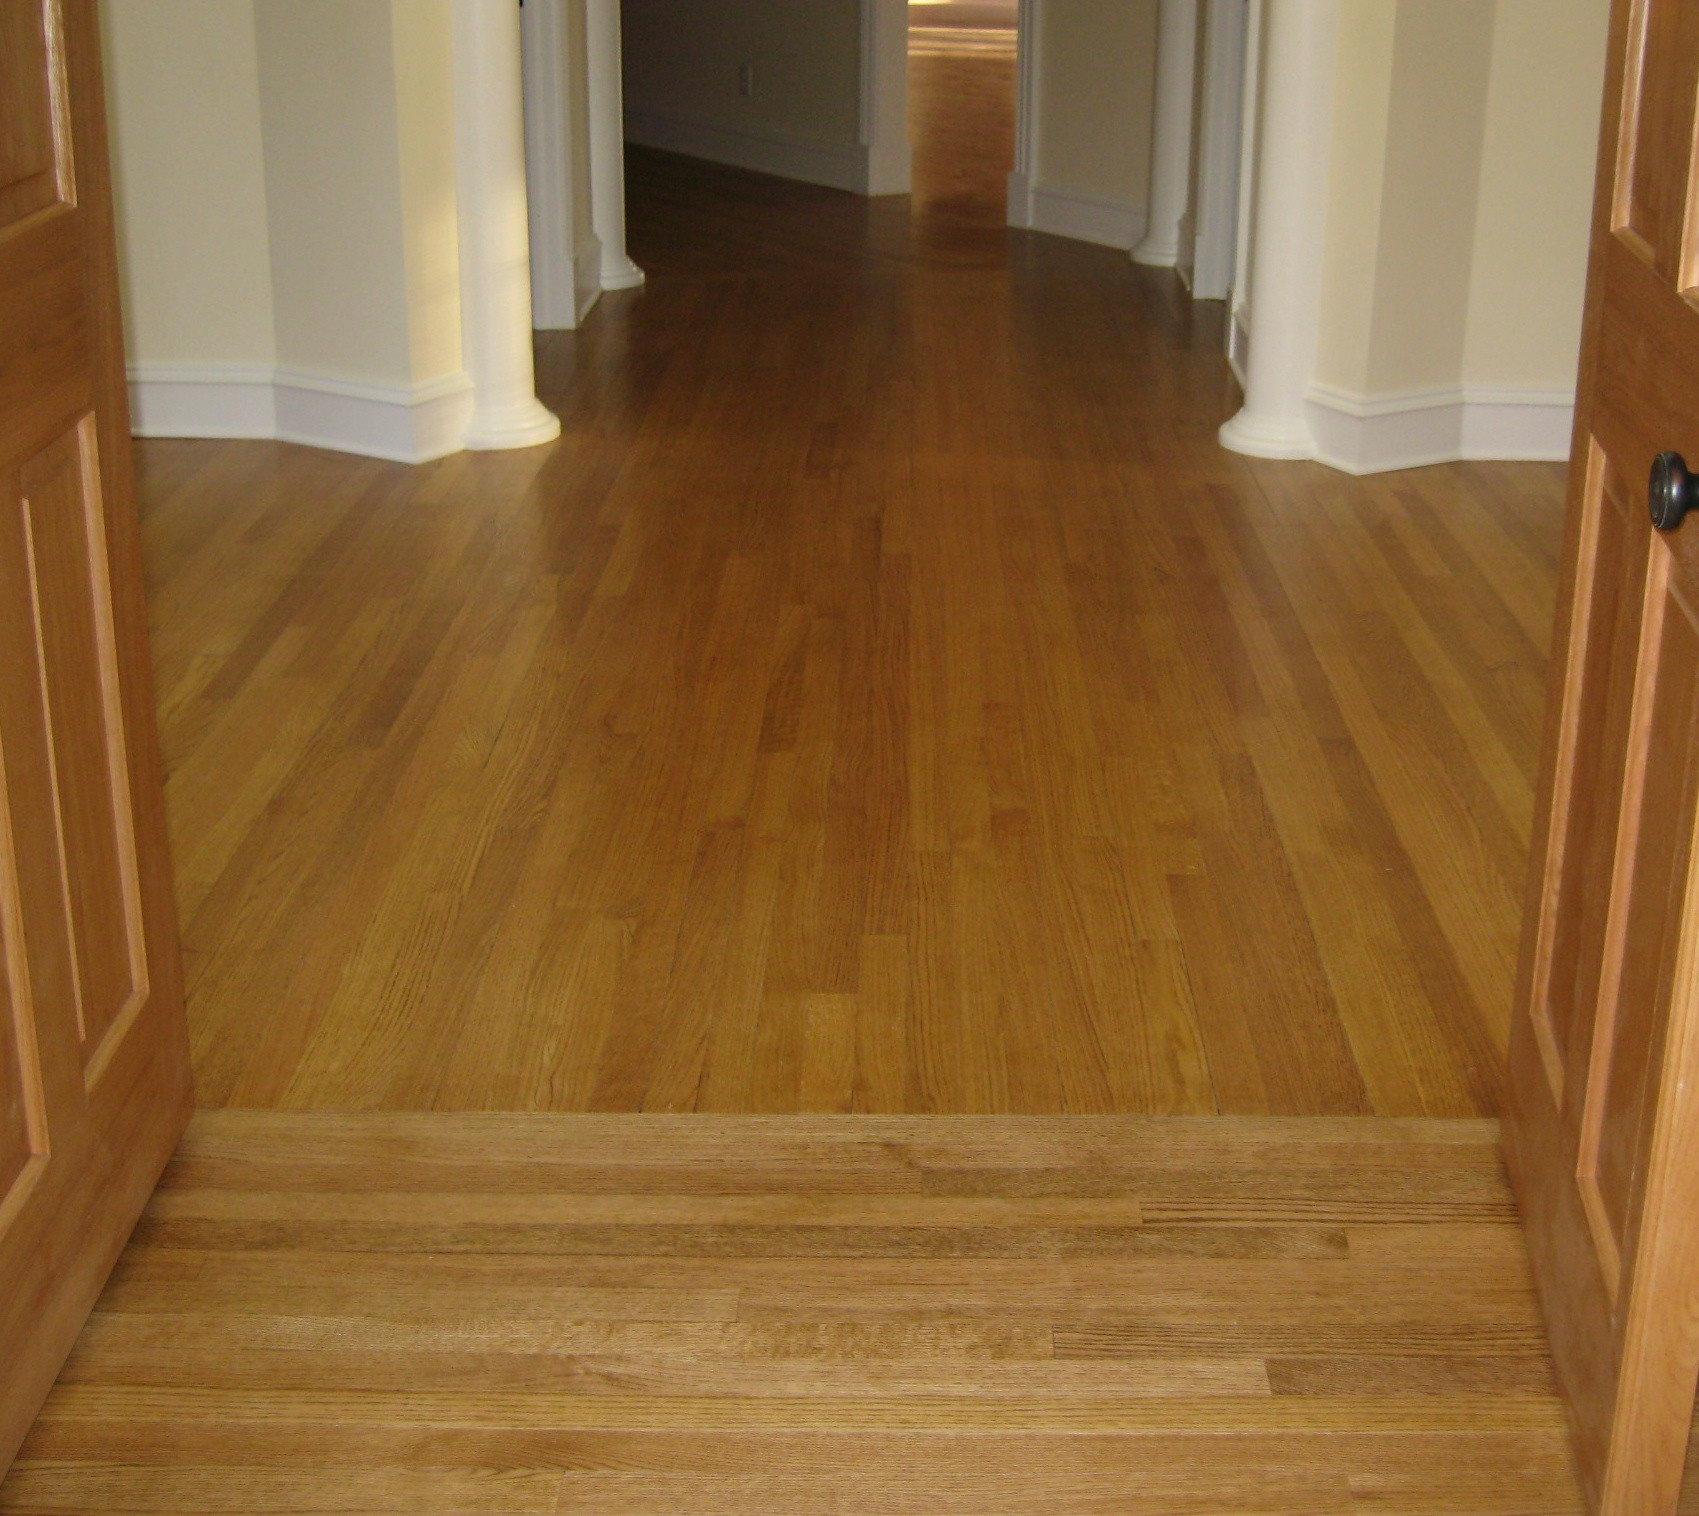 2 1 4 Red Oak solid Hardwood Flooring Of 1 X2 Flooring Type White Oak solid Prefinished Flooring butterscotch within White Oak solid Prefinished Flooring 2 1 4 butterscotch Install Hardwood Flooring Evesham Nj 171 Victorian Flooring Blog